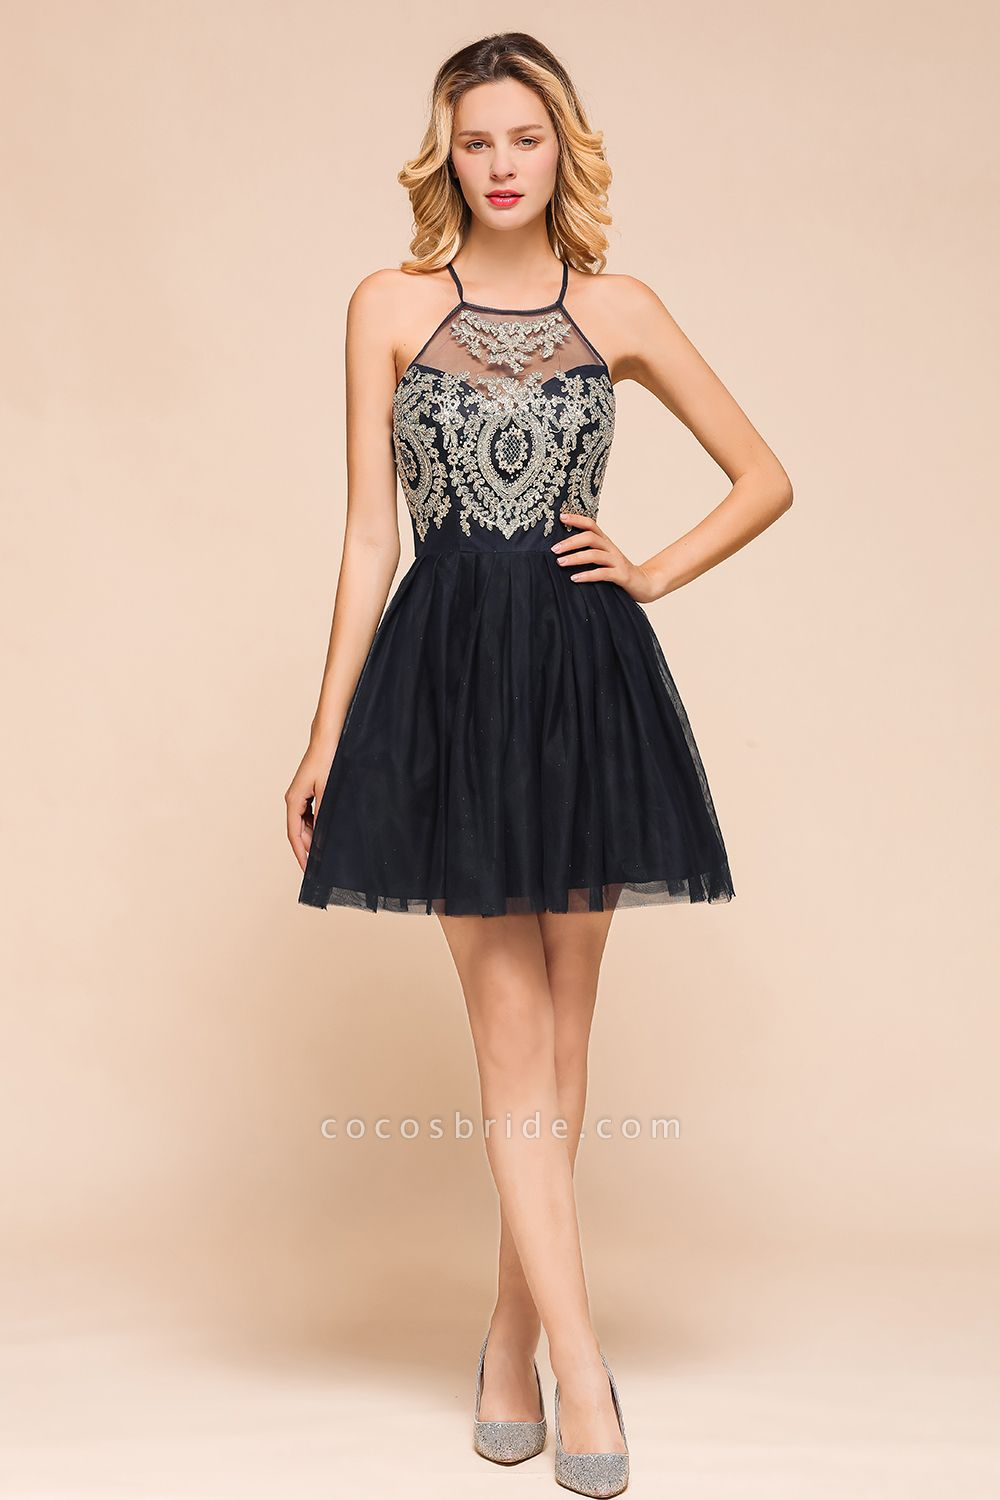 Sweet Halter Appliques Short A Line Prom Dress